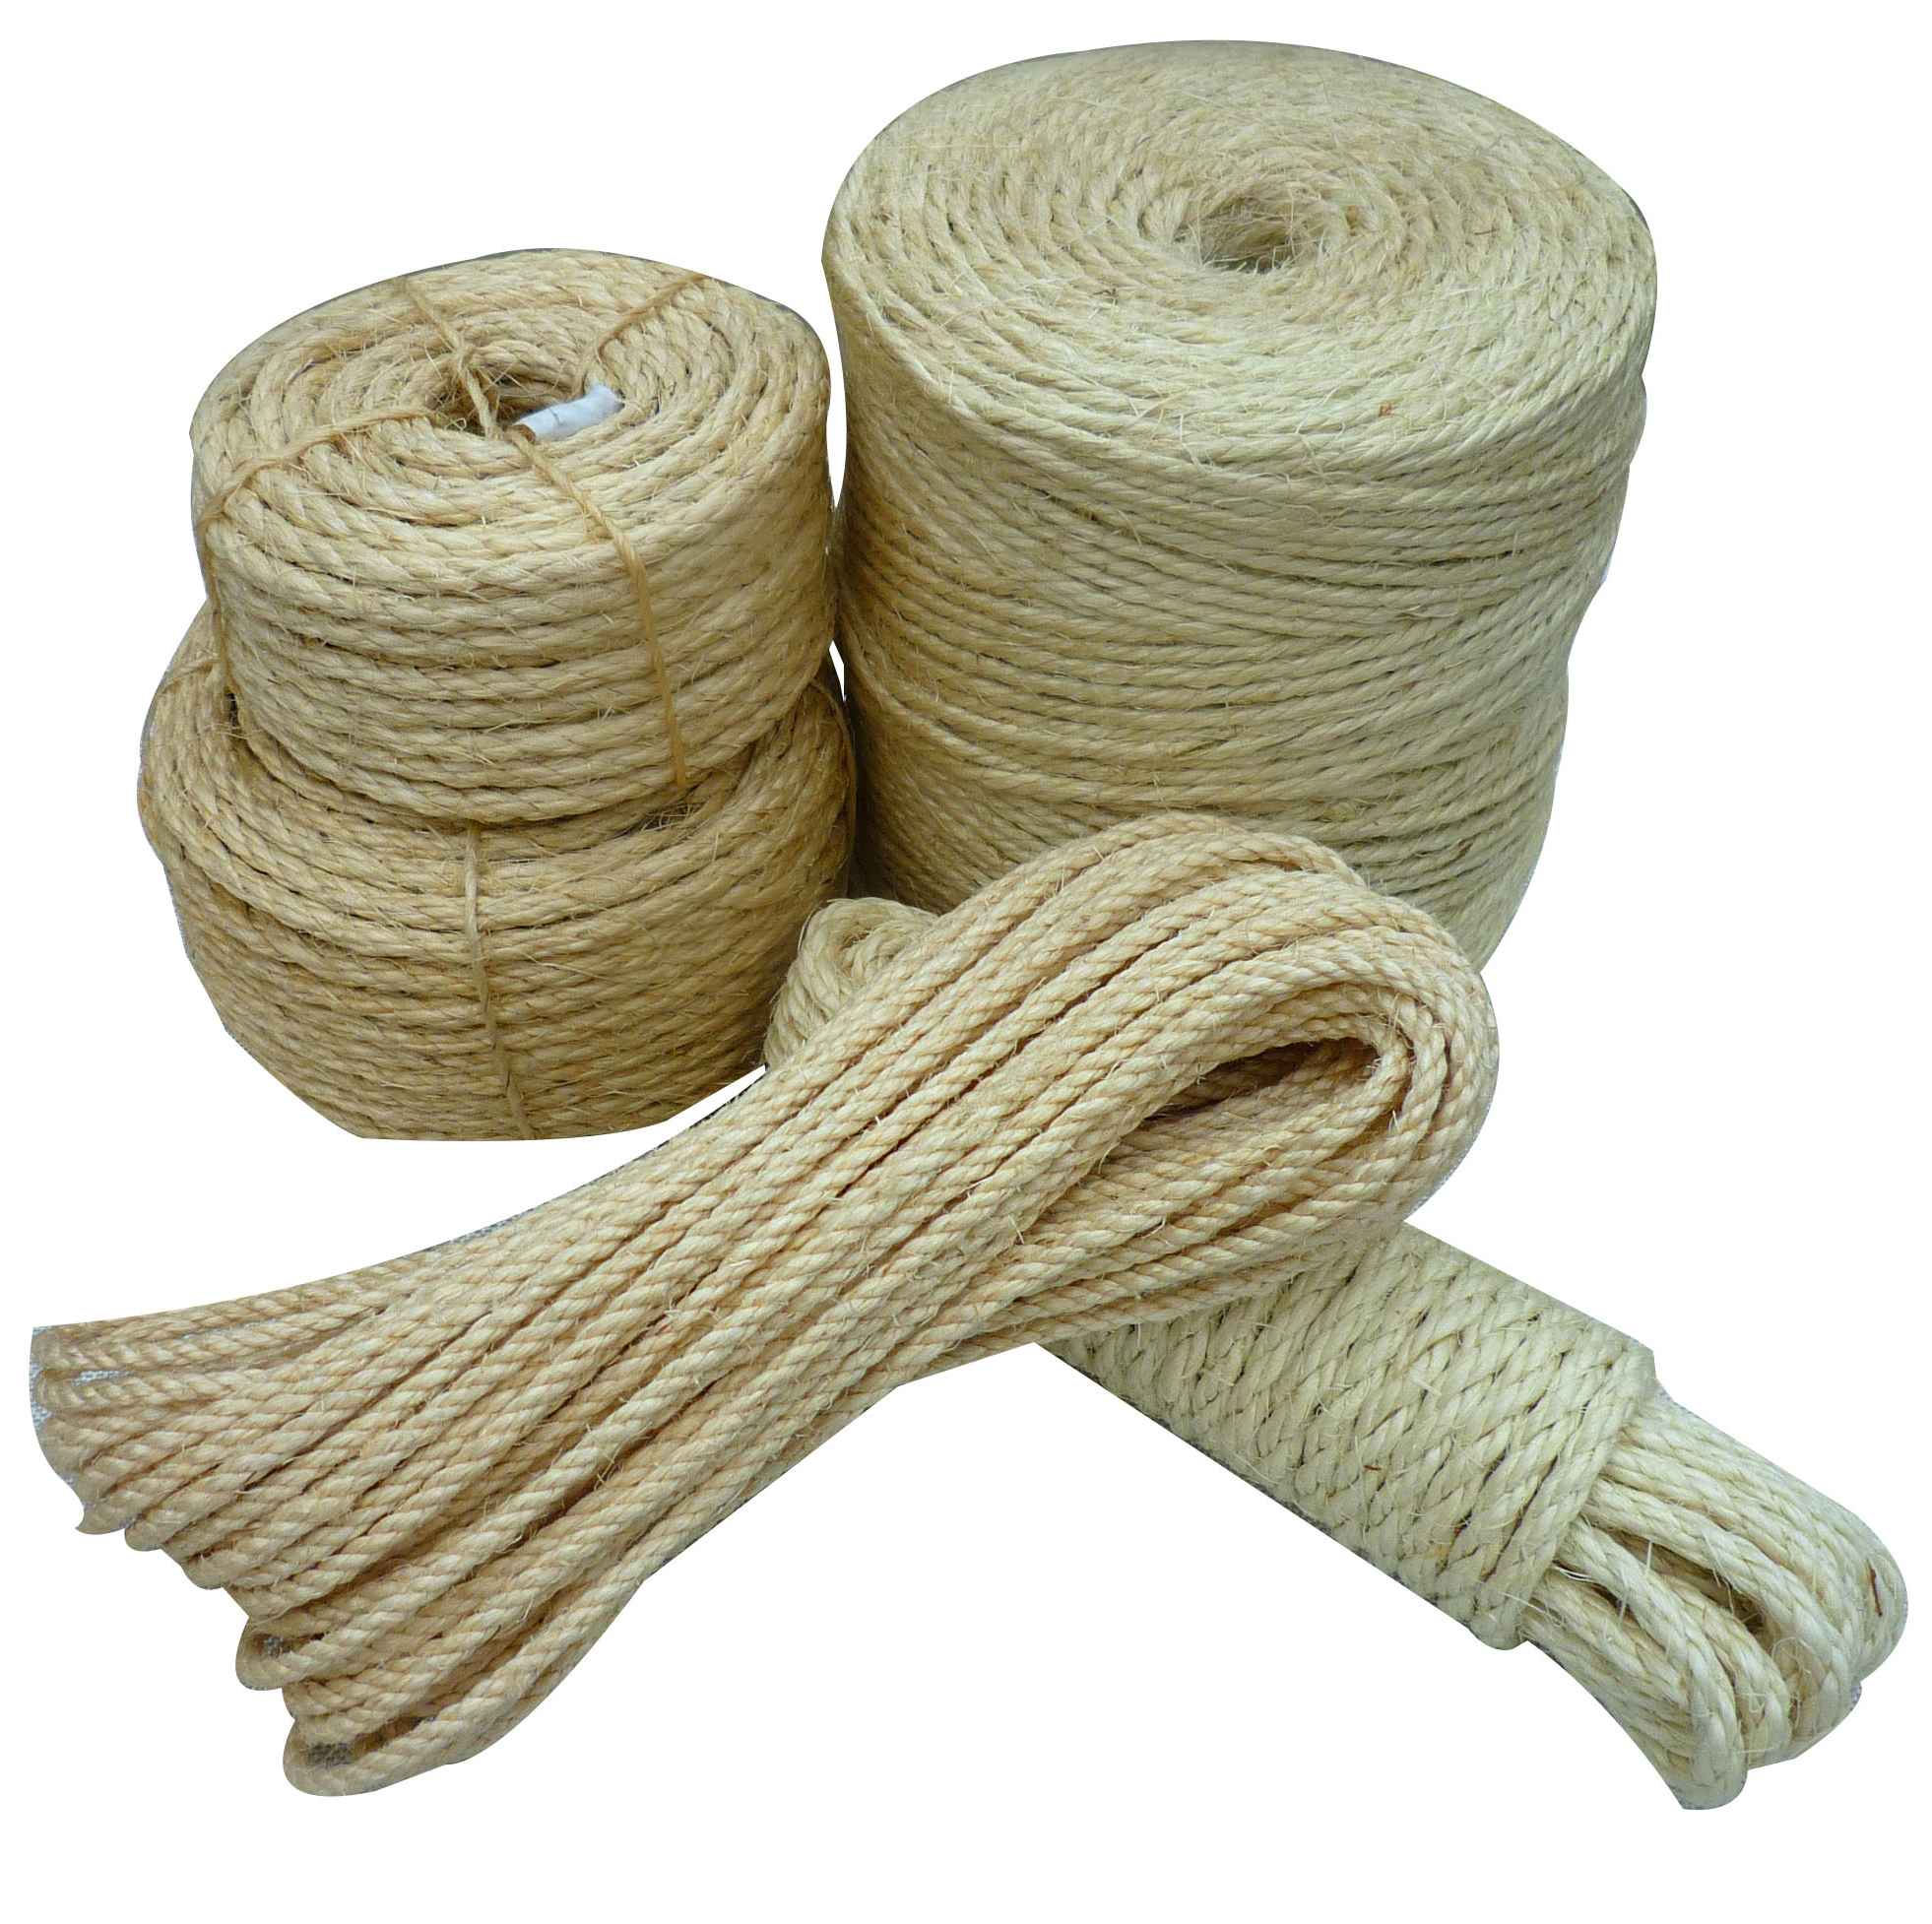 10mm Natural Color 3 Strandstwisted Sisal Rope - Buy Sisal Rope  Untreated,Twisted Sisal Rope,10mm Sisal Rope Product on Alibaba com